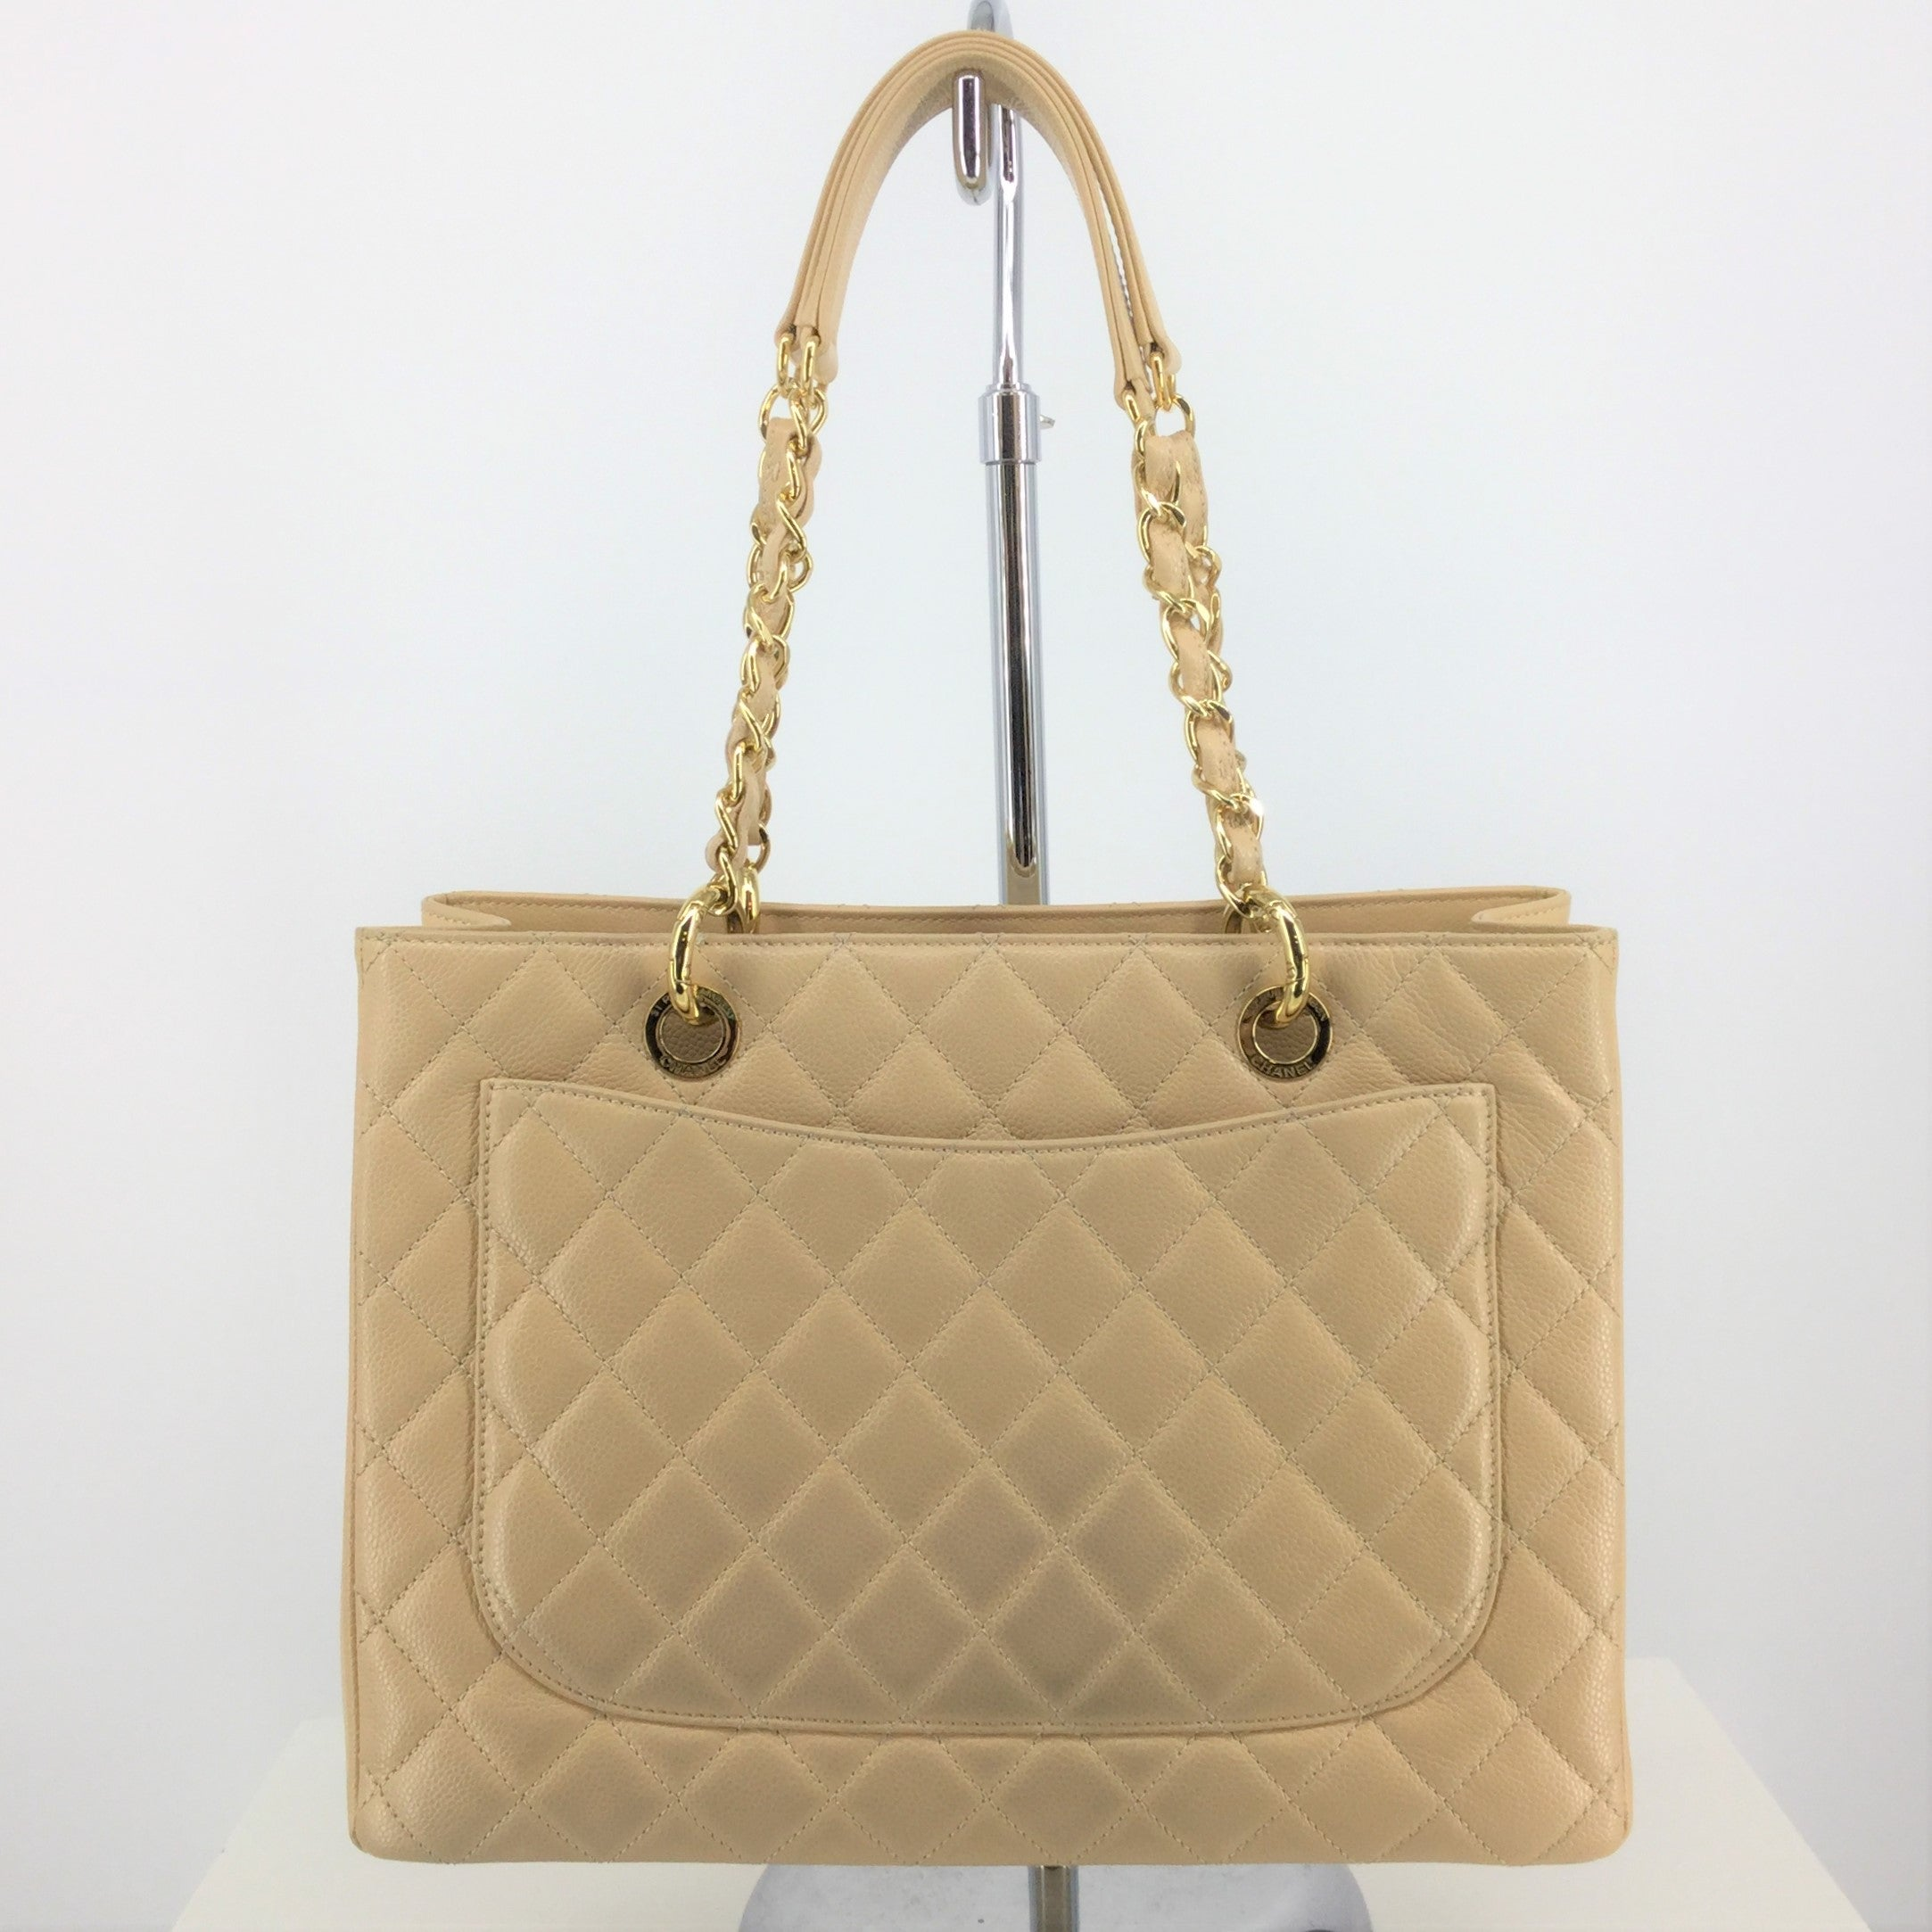 Chanel Grand Shopper Tote - BEAUTIFUL QUILTED BEIGE LEATHER CHANEL GRAND SHOPPER TOTE. COMES WITH DUST BAG AND AUTHENTICATION CARD. DOES HAVE COLOR TRANSFER ON BACK SIDE. OTHERWISE, IN AMAZING CONDITION. GOLD HARDWARE. ZIPPER DIVIDER POUCH.  ONE LARGE SLIP POCKET AND ONE LARGE ZIPPER POCKET INSIDE.